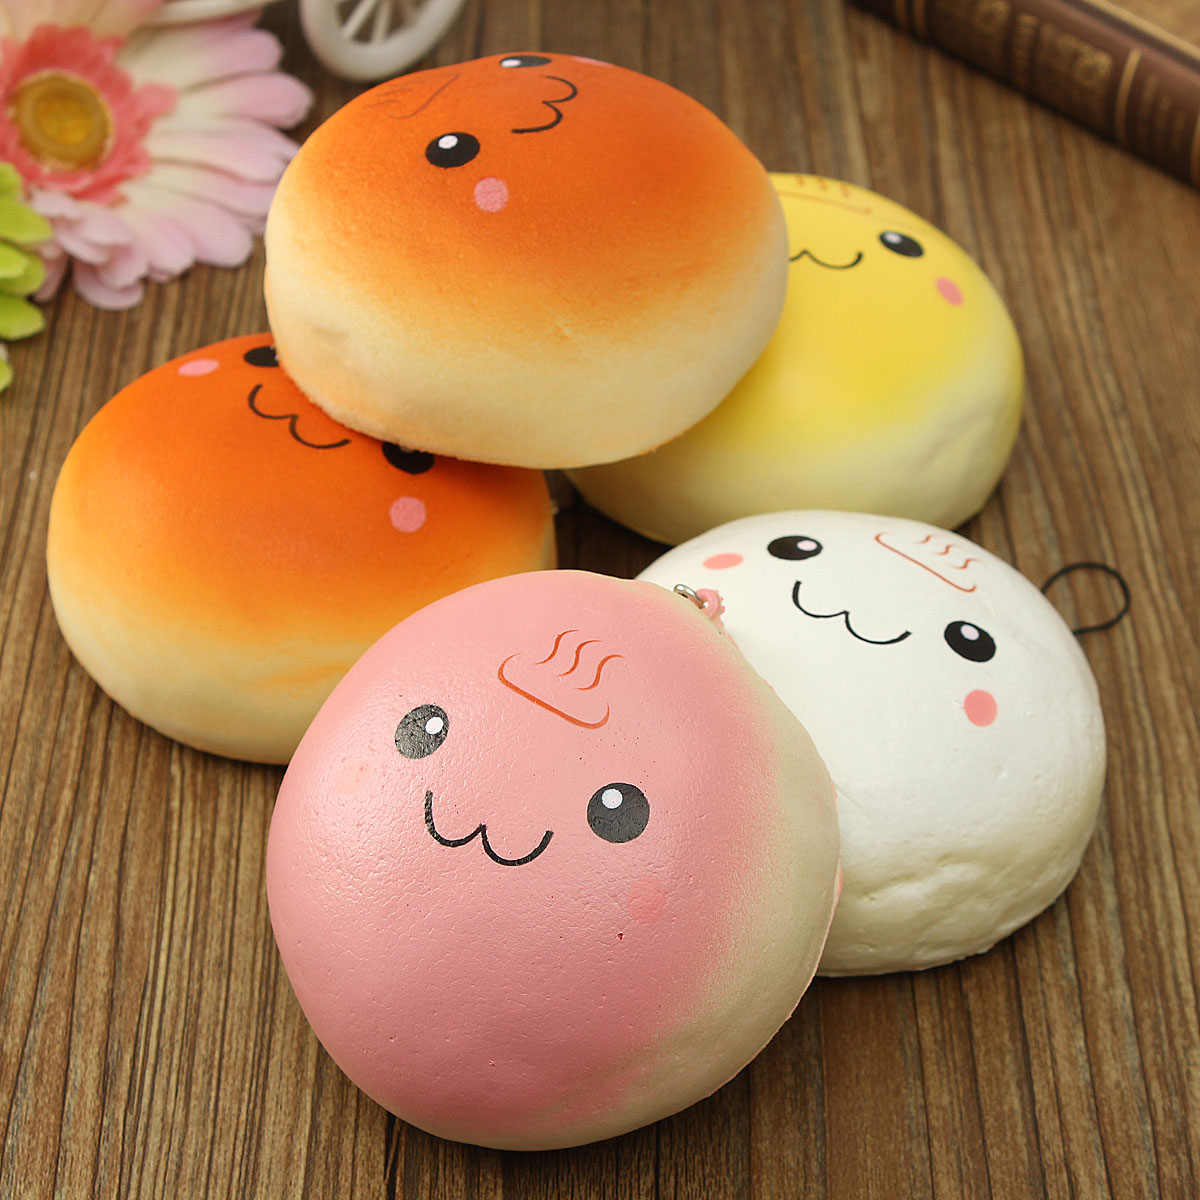 Cute Squishies Wallpaper 10cm Cute Smiling Expression Kawaii Squishy Bread Keychain